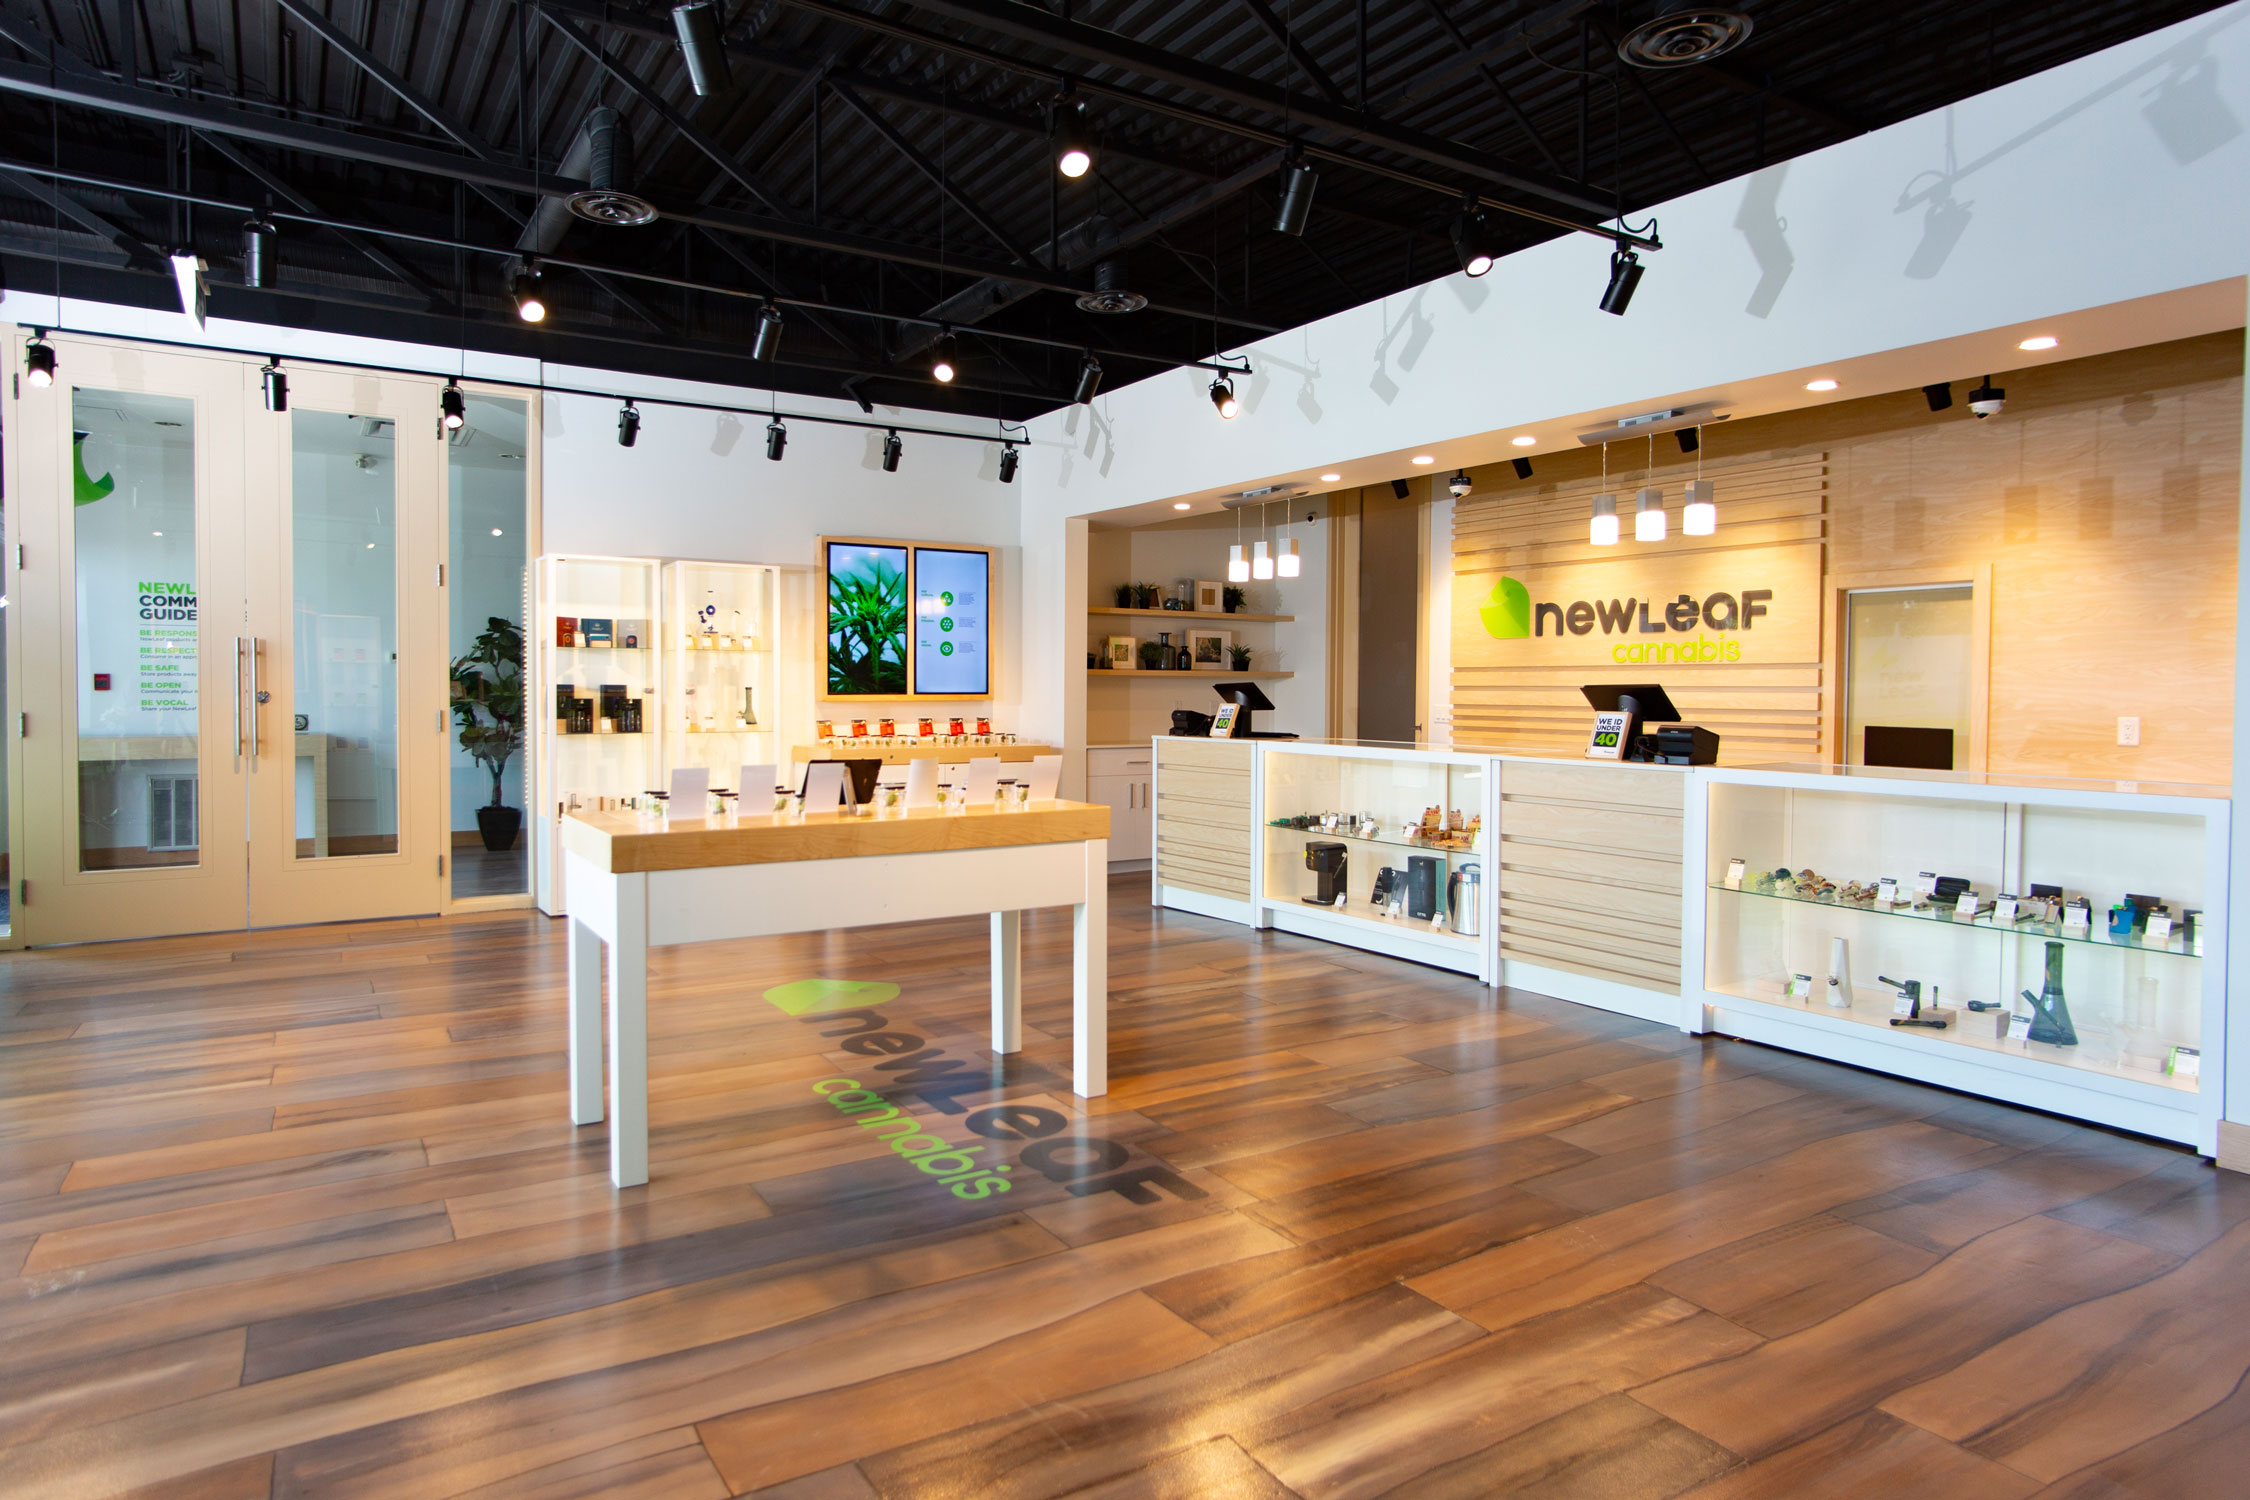 NewLeaf Cannabis Offers a Sneak-Peek at the Future of Cannabis Retail